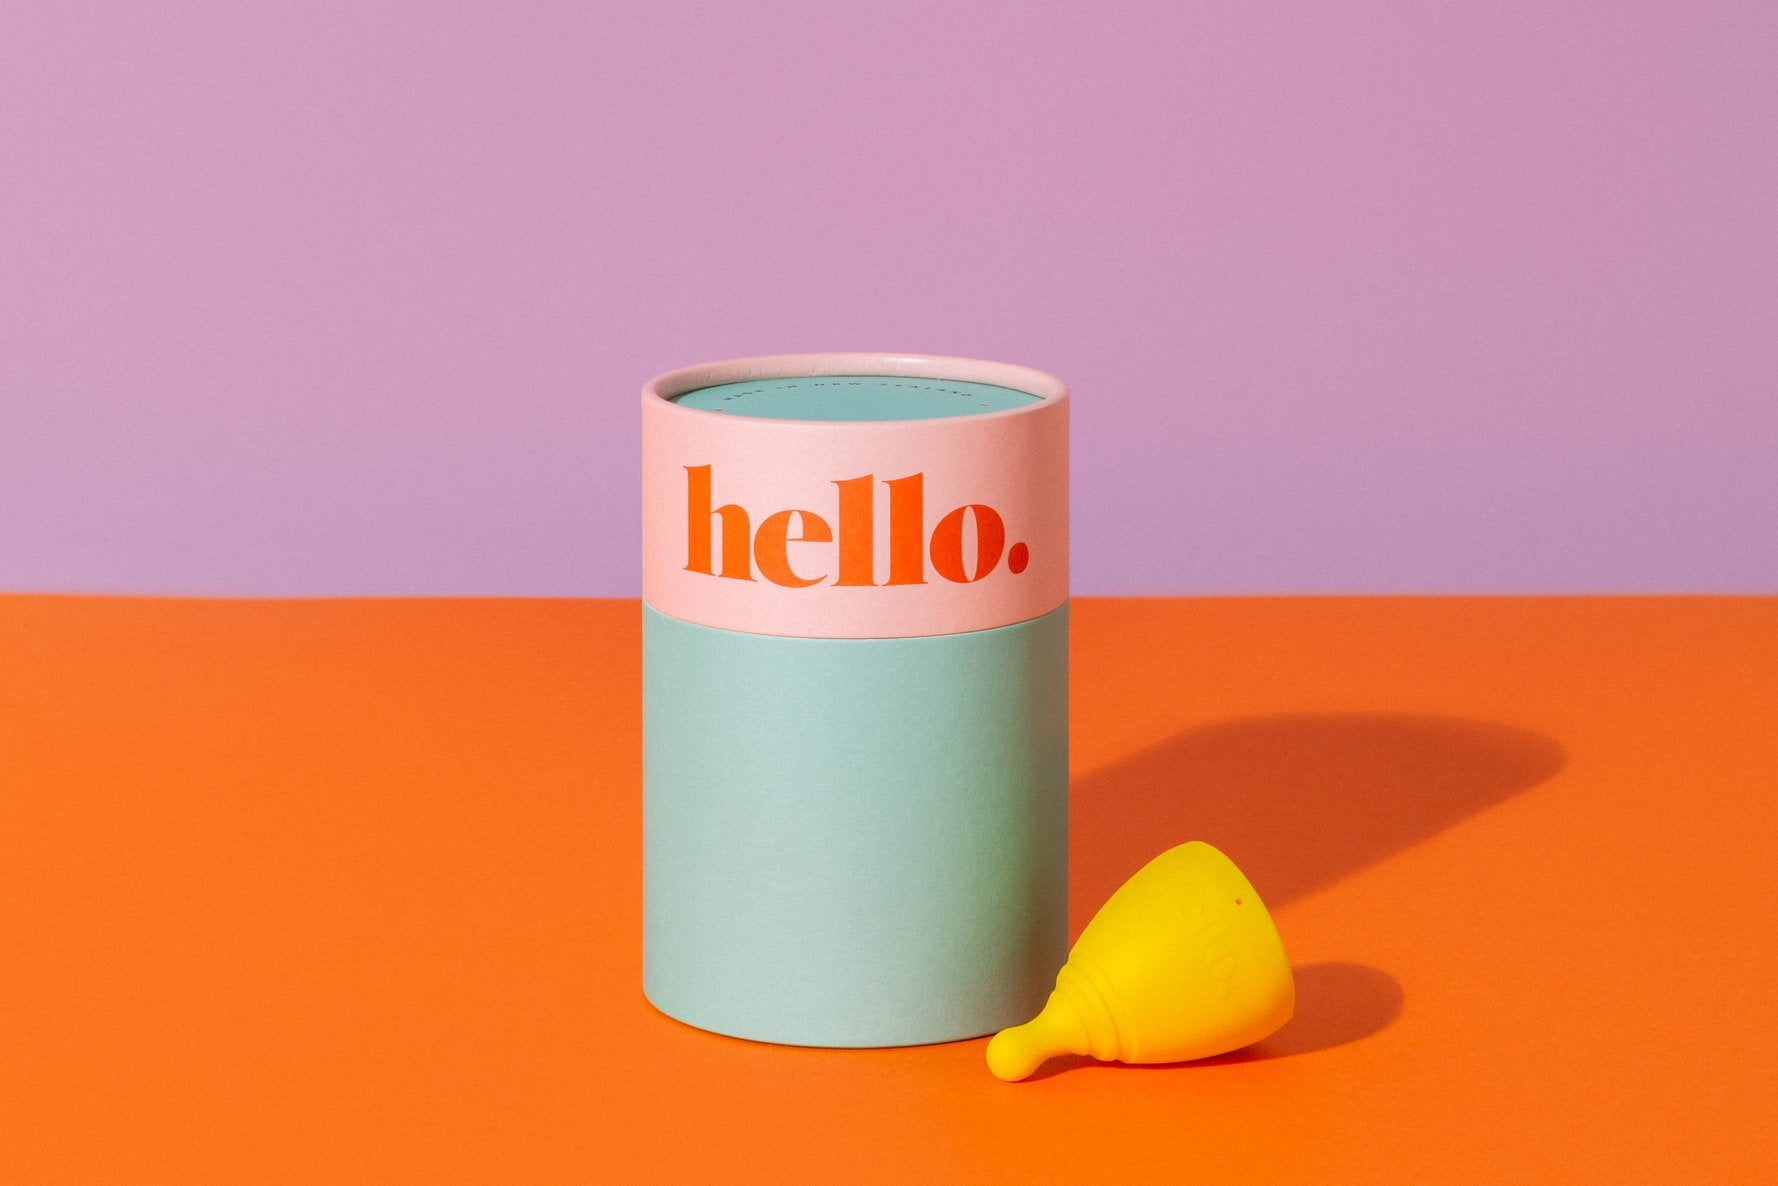 The Hello Cup Large Menstrual Cup - Sustainable Period Care